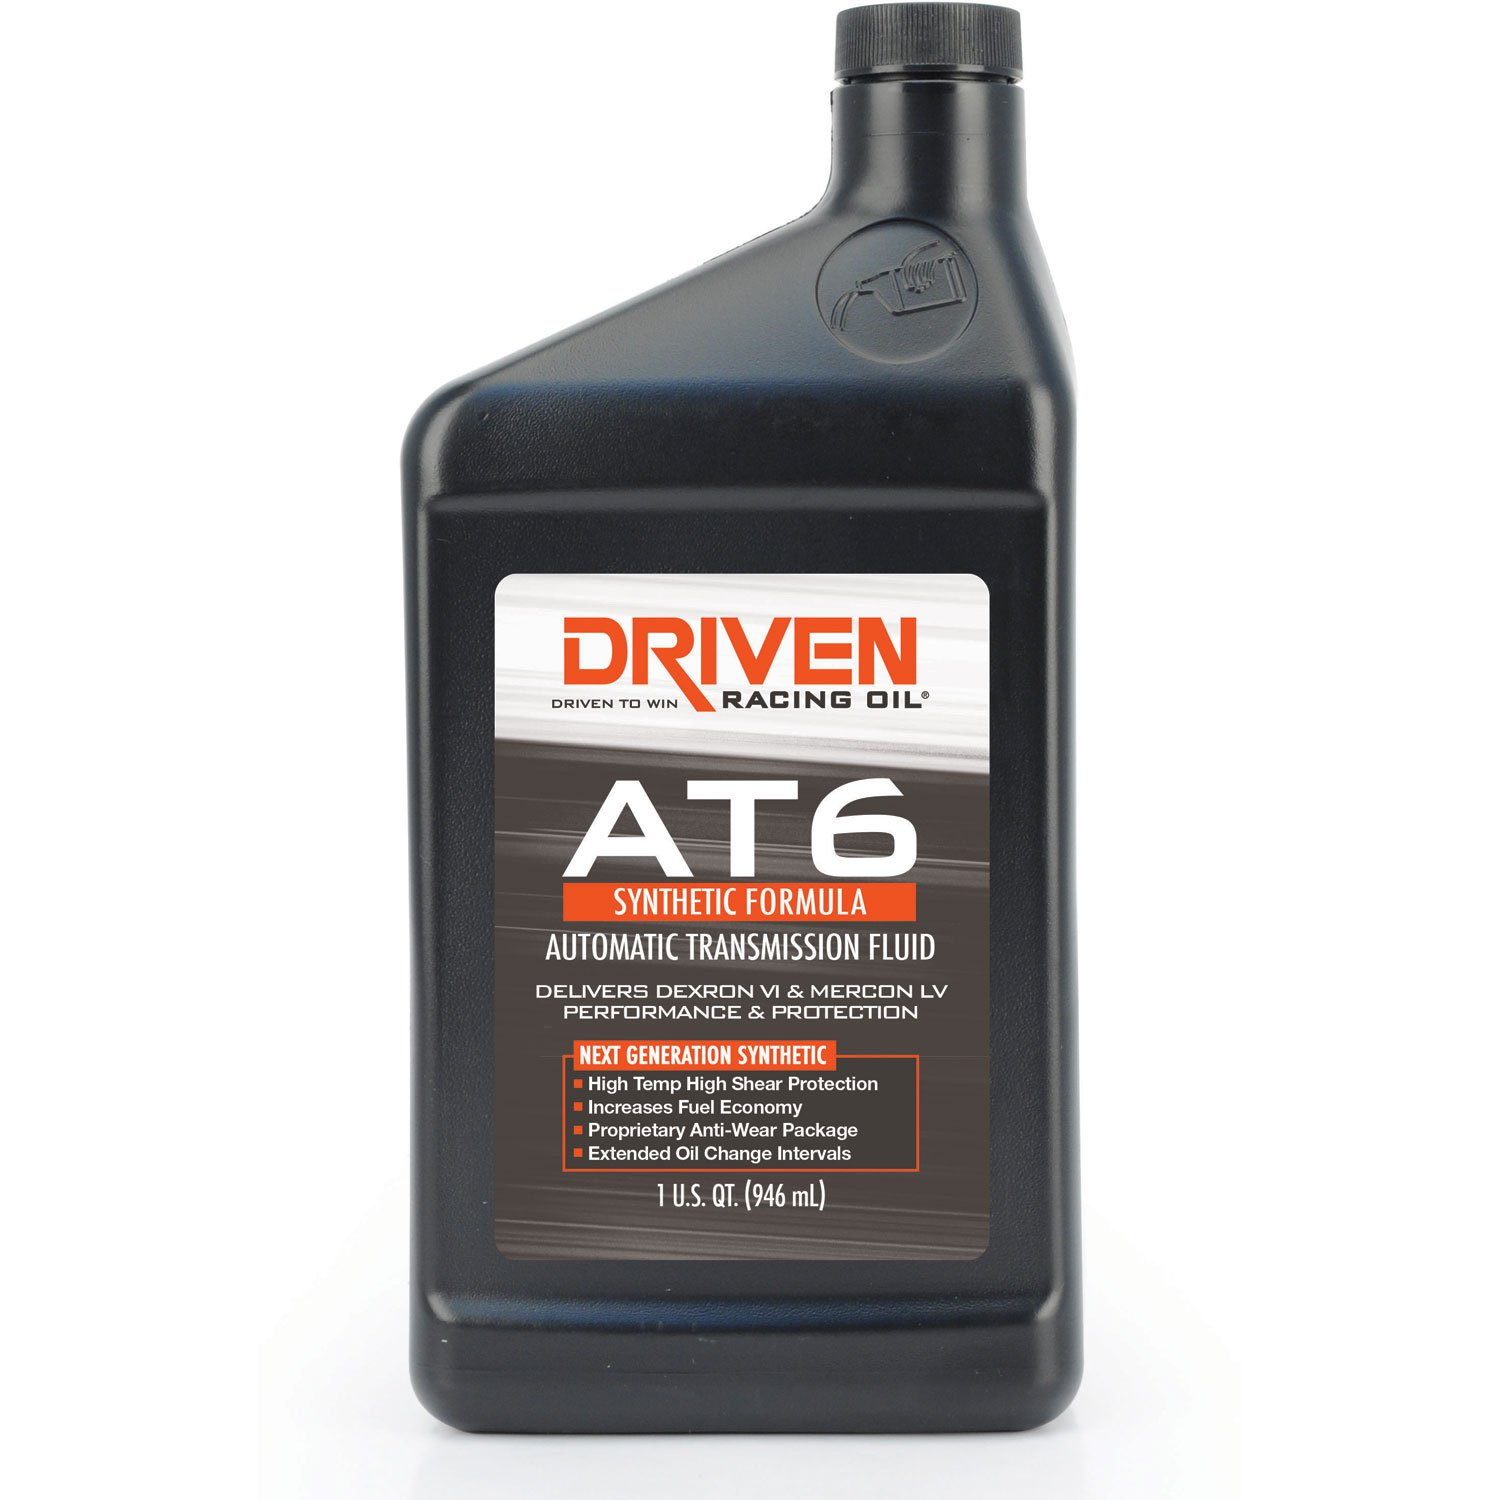 Driven Racing Oil AT6 Synthetic Dex 6 Auto. Transmission Fluid - Quart